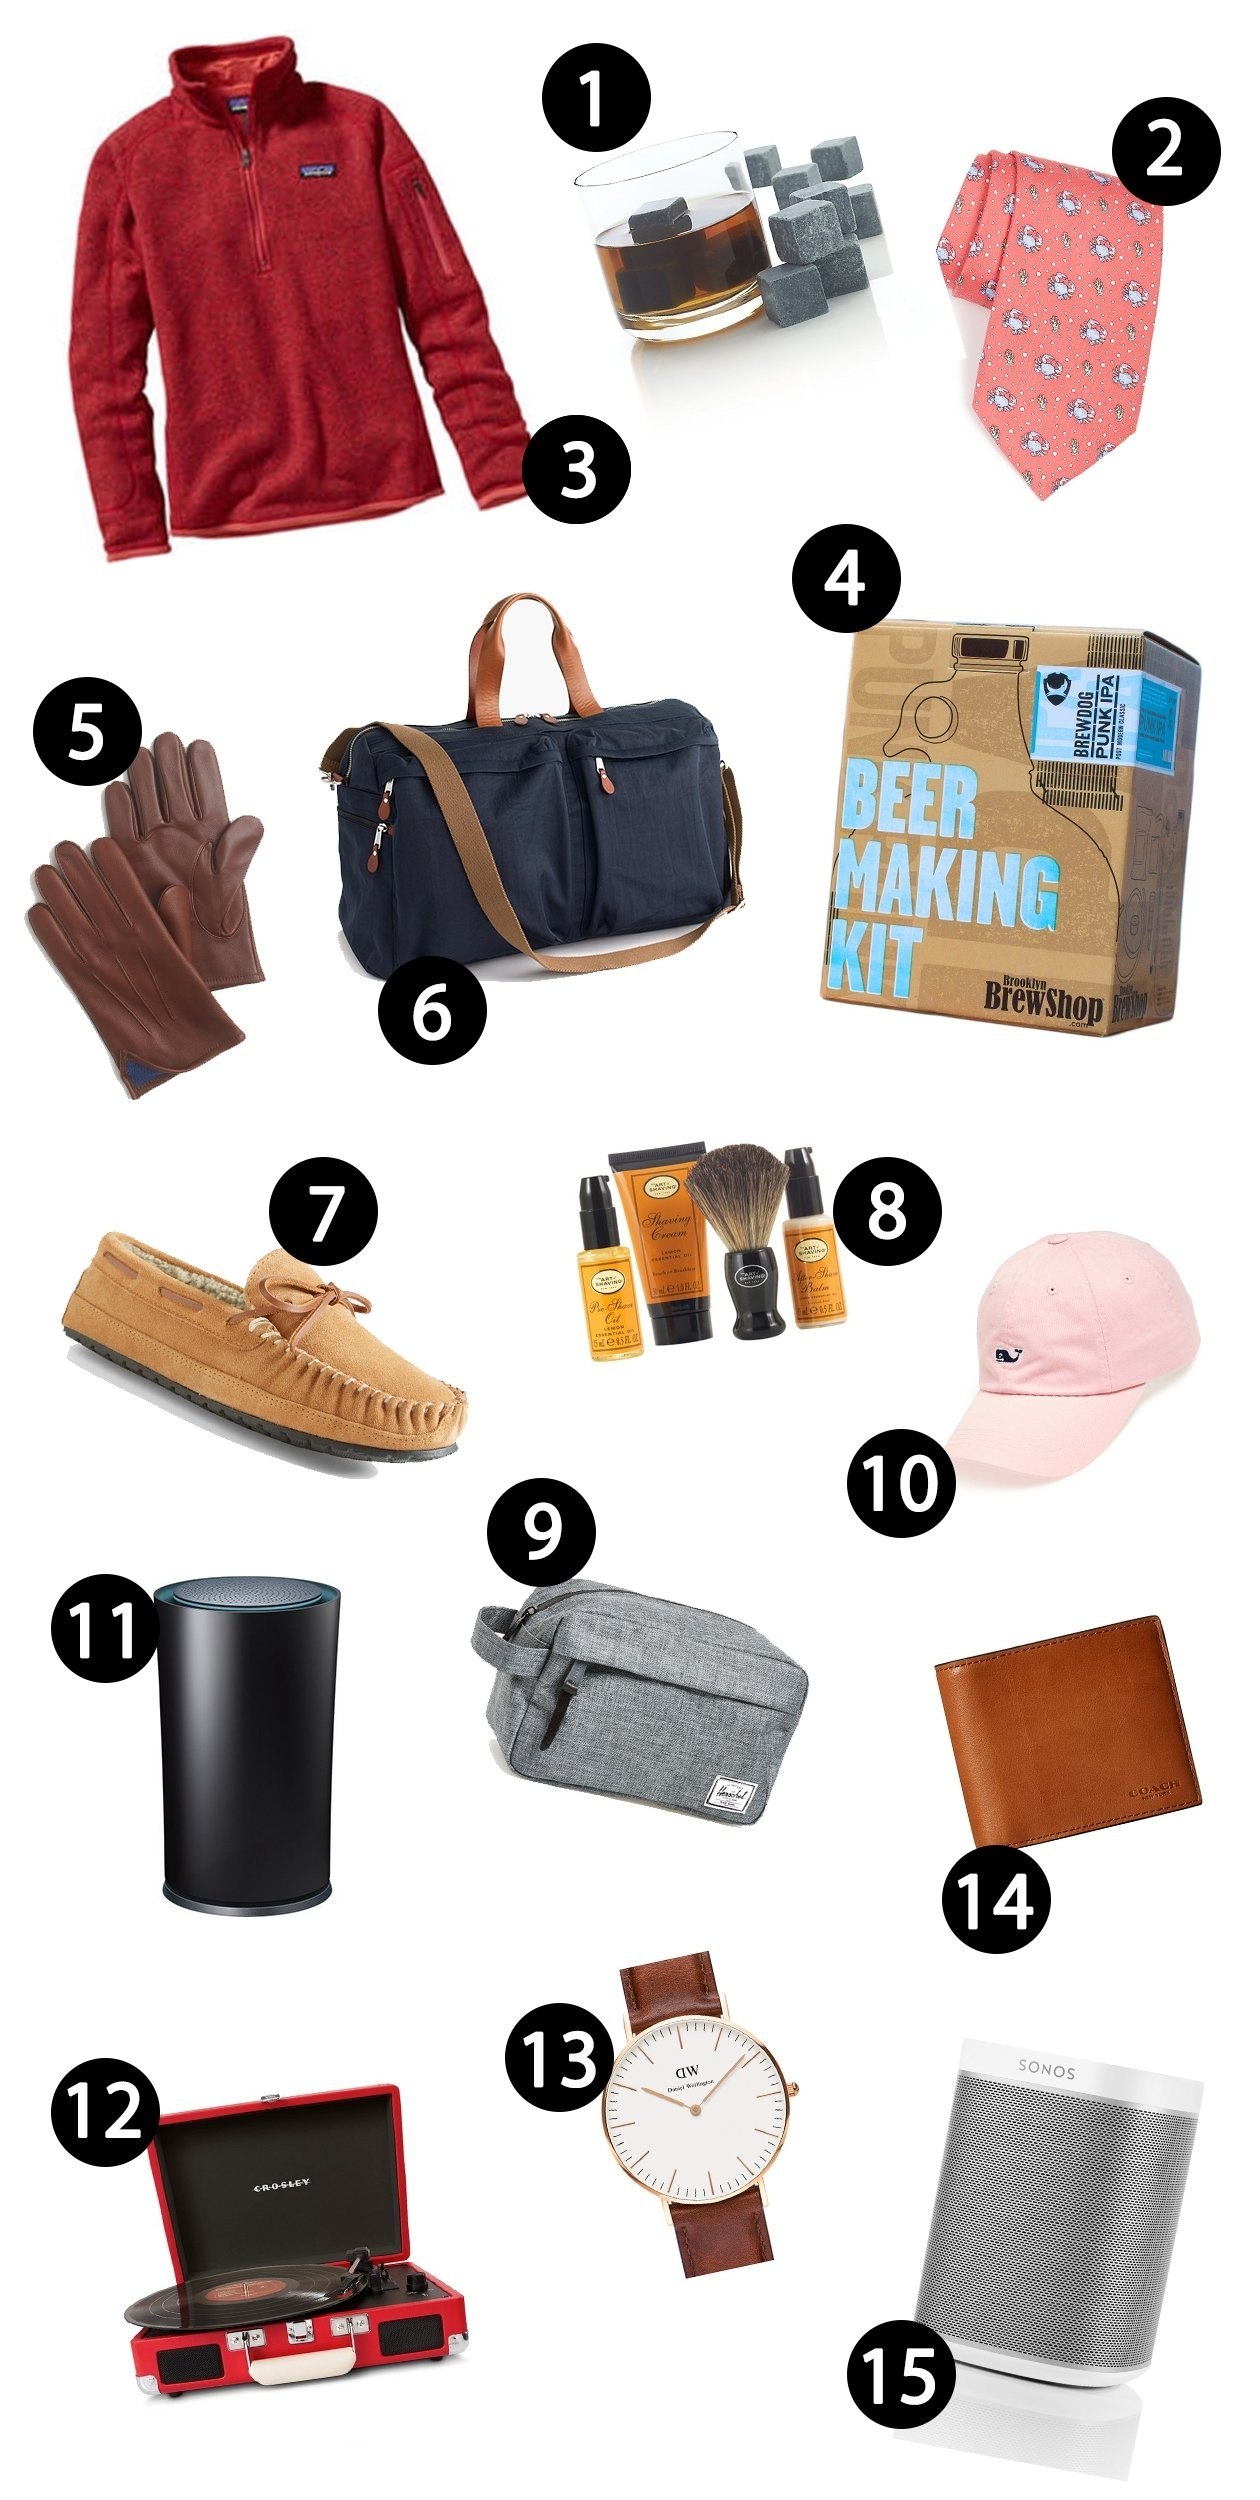 10 Wonderful Fun Gift Ideas For Men mitchs really funny valentines day gift guide kelly in the city 2021